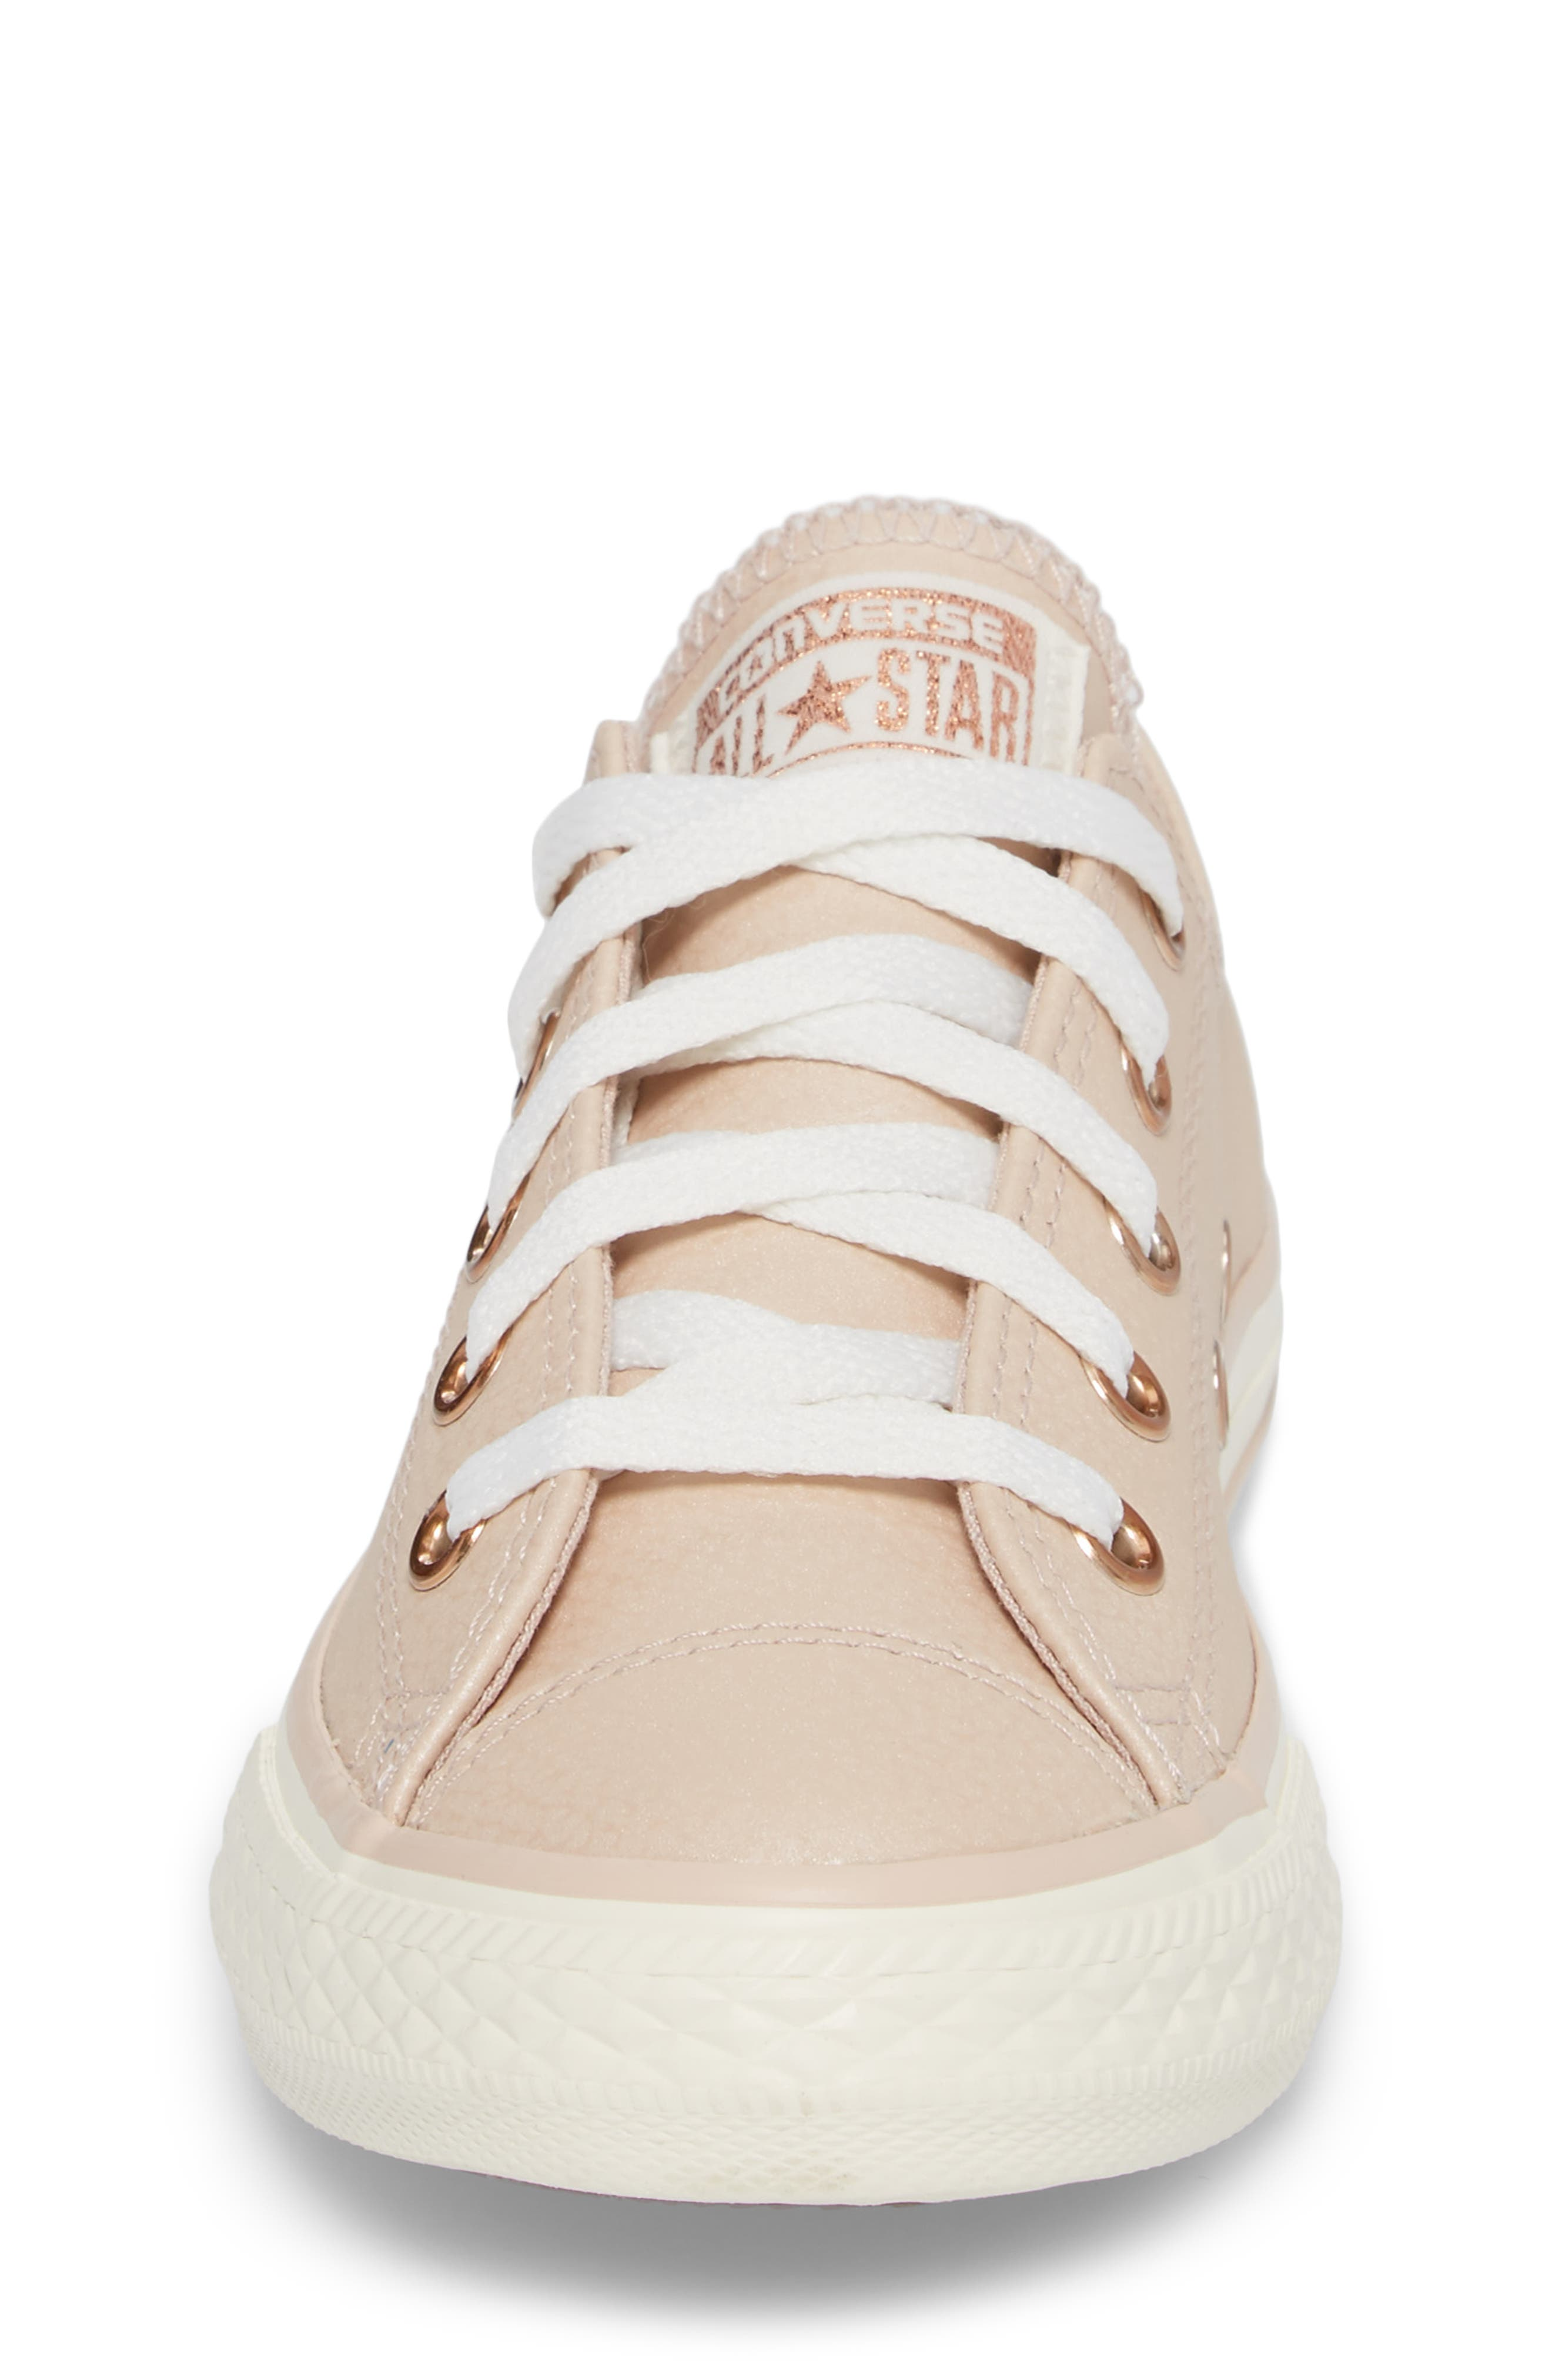 All Star<sup>®</sup> Fashion Low Top Sneaker,                             Alternate thumbnail 4, color,                             Particle Beige